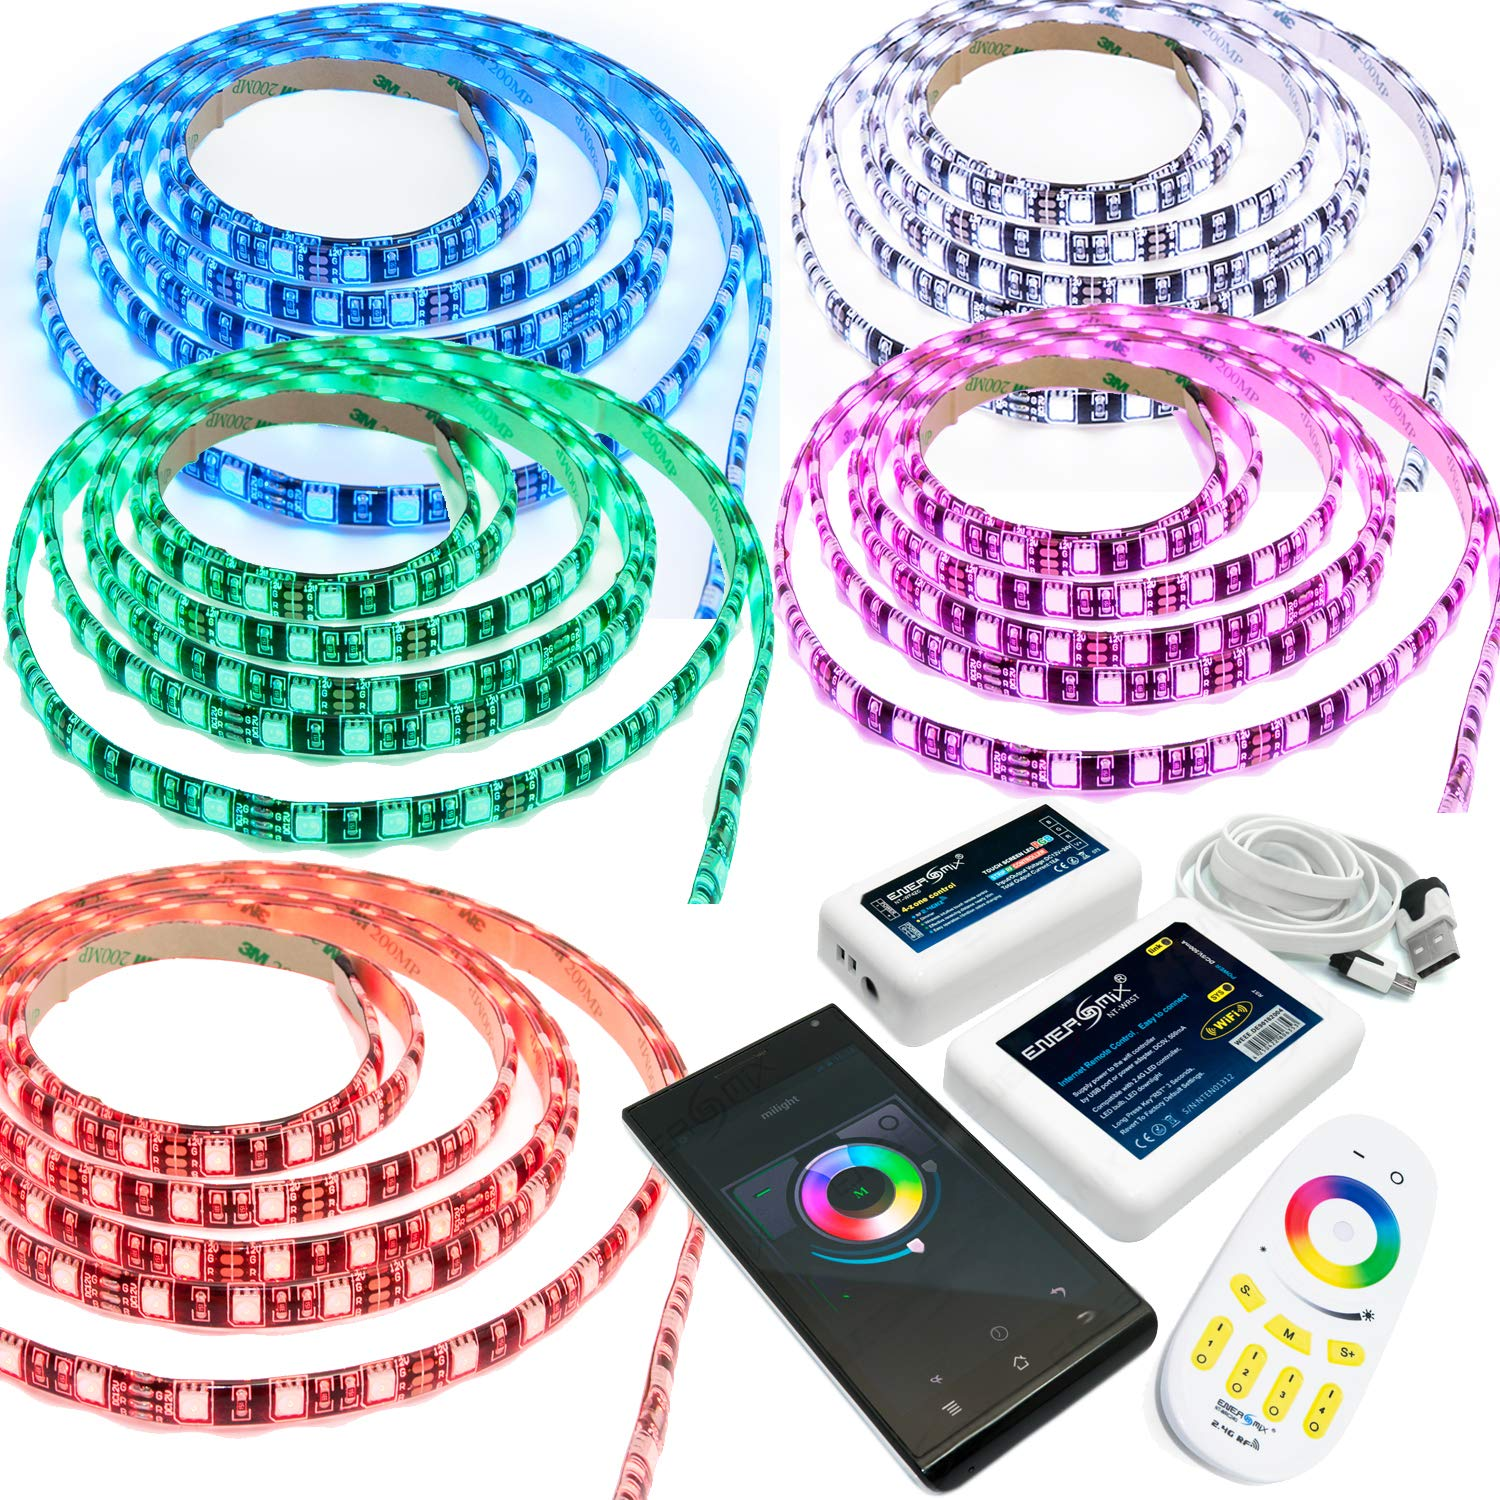 LED RGB Strip - 60 LED pro Meter inklusive W-LAN SET Weiß 7 Meter